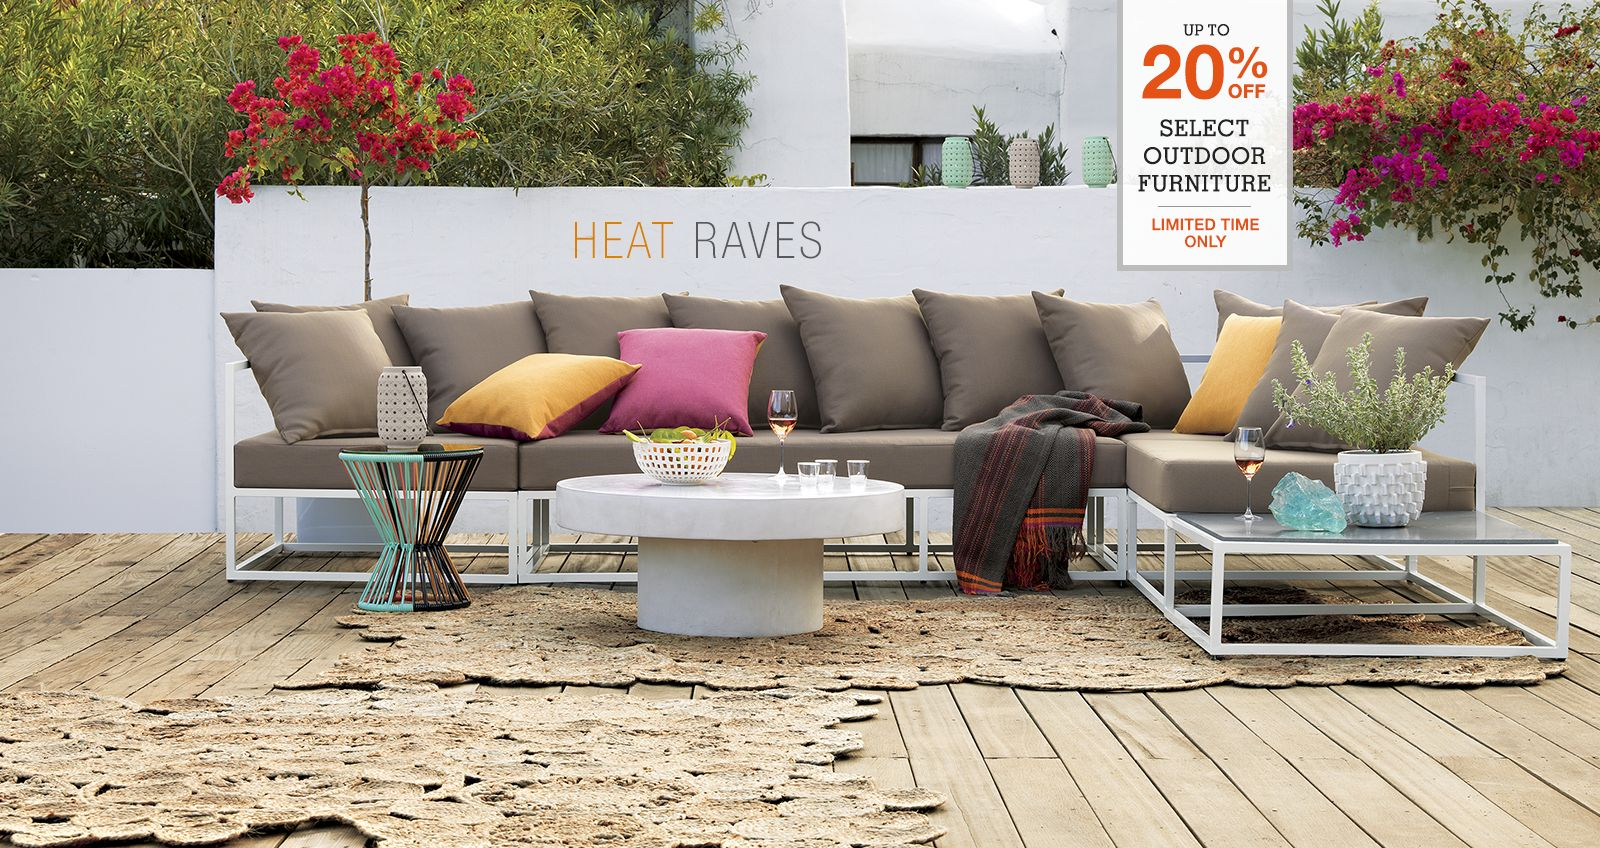 what's new under the sun. up to 20% off select outdoor furniture. limited time only